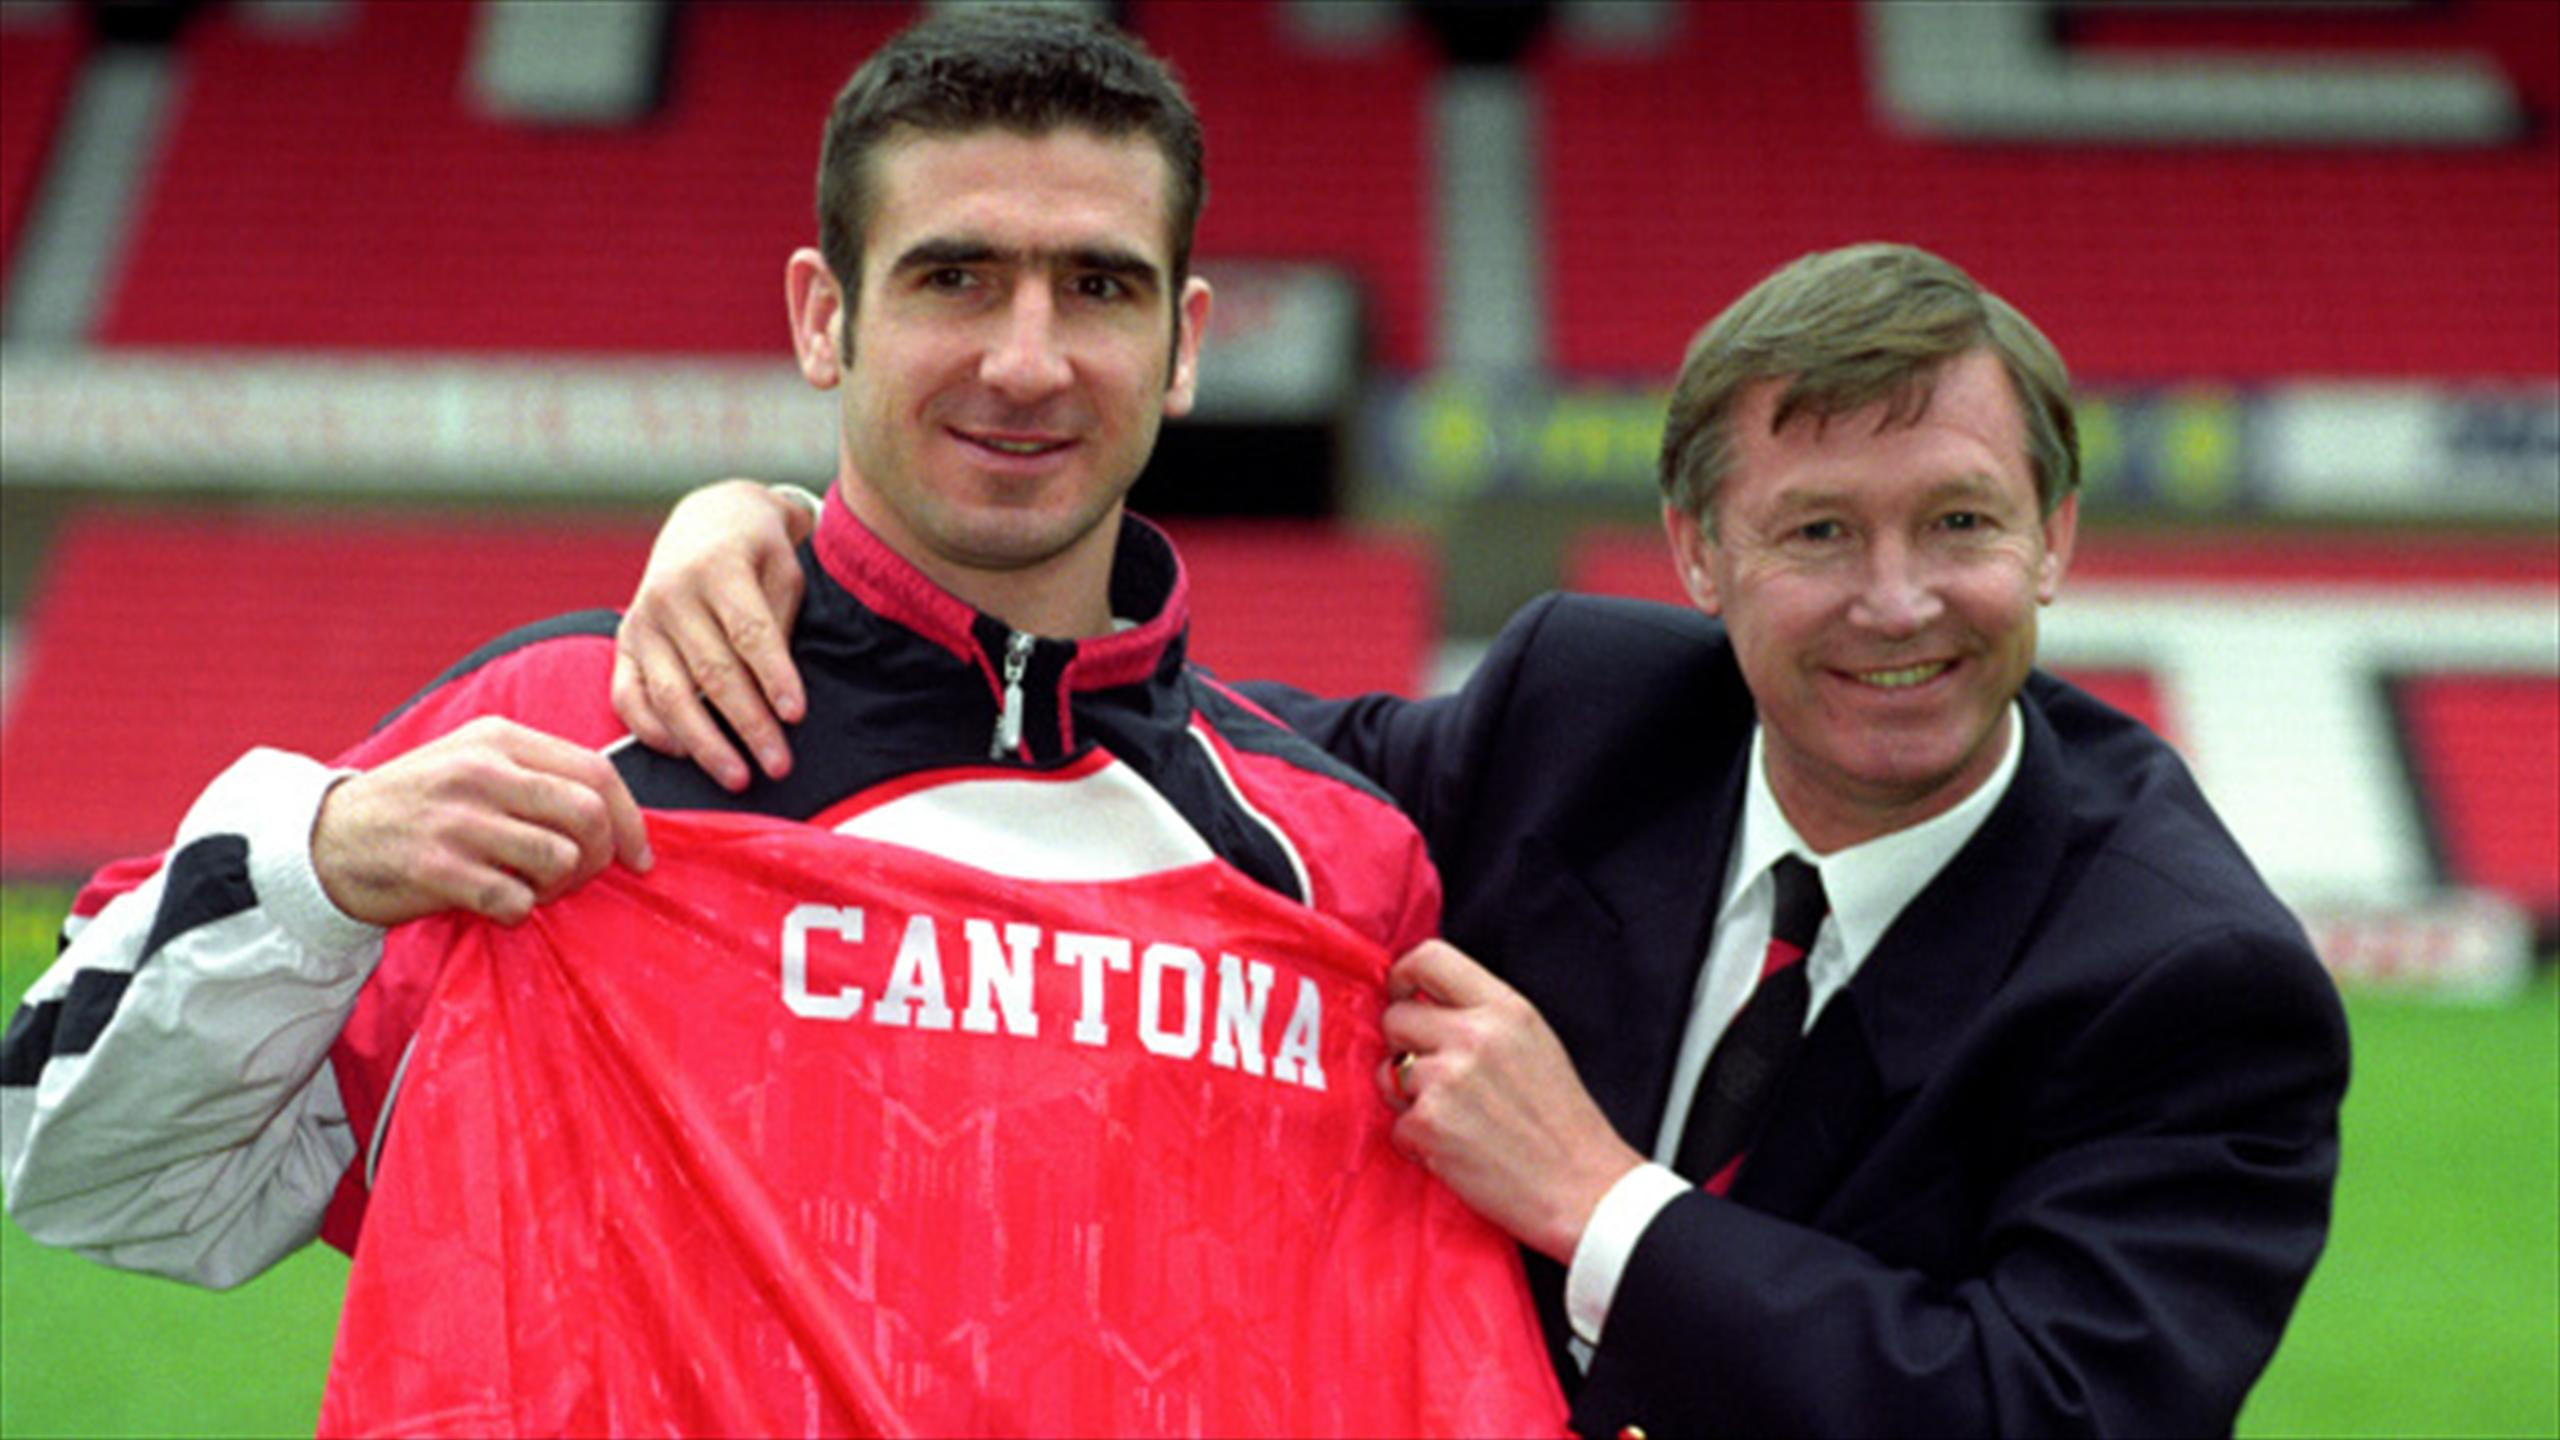 A lengthy ban from the game was regarded as inevitable, with some critics calling for cantona to be deported. Eric Cantona What They Said Eurosport